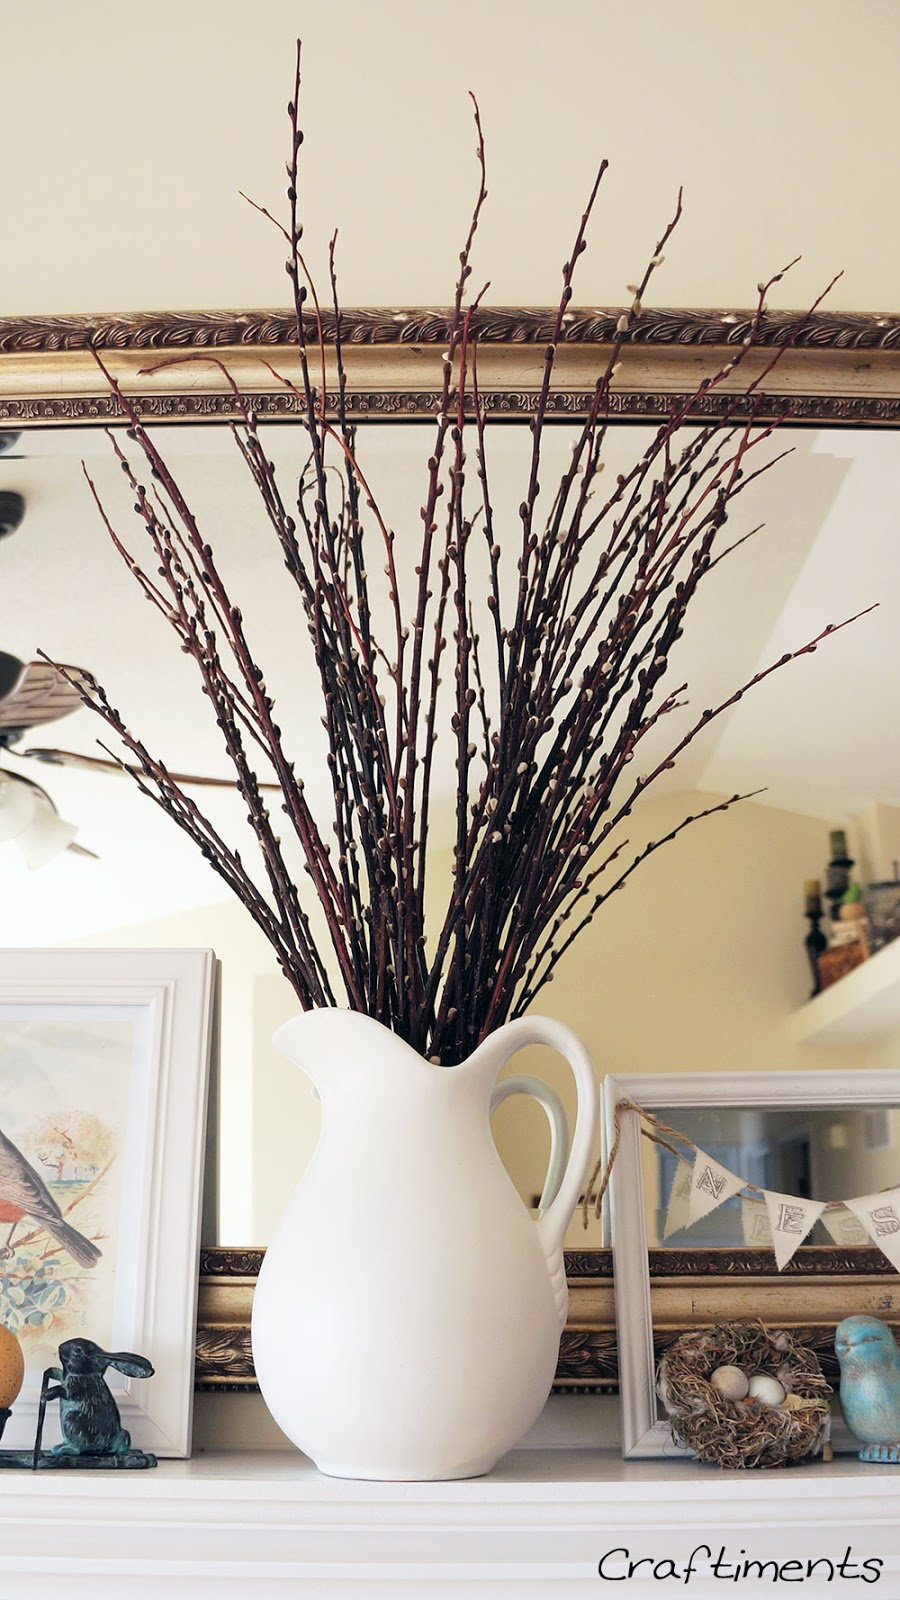 Craftiments:  Pitcher of dried pussy willow branches